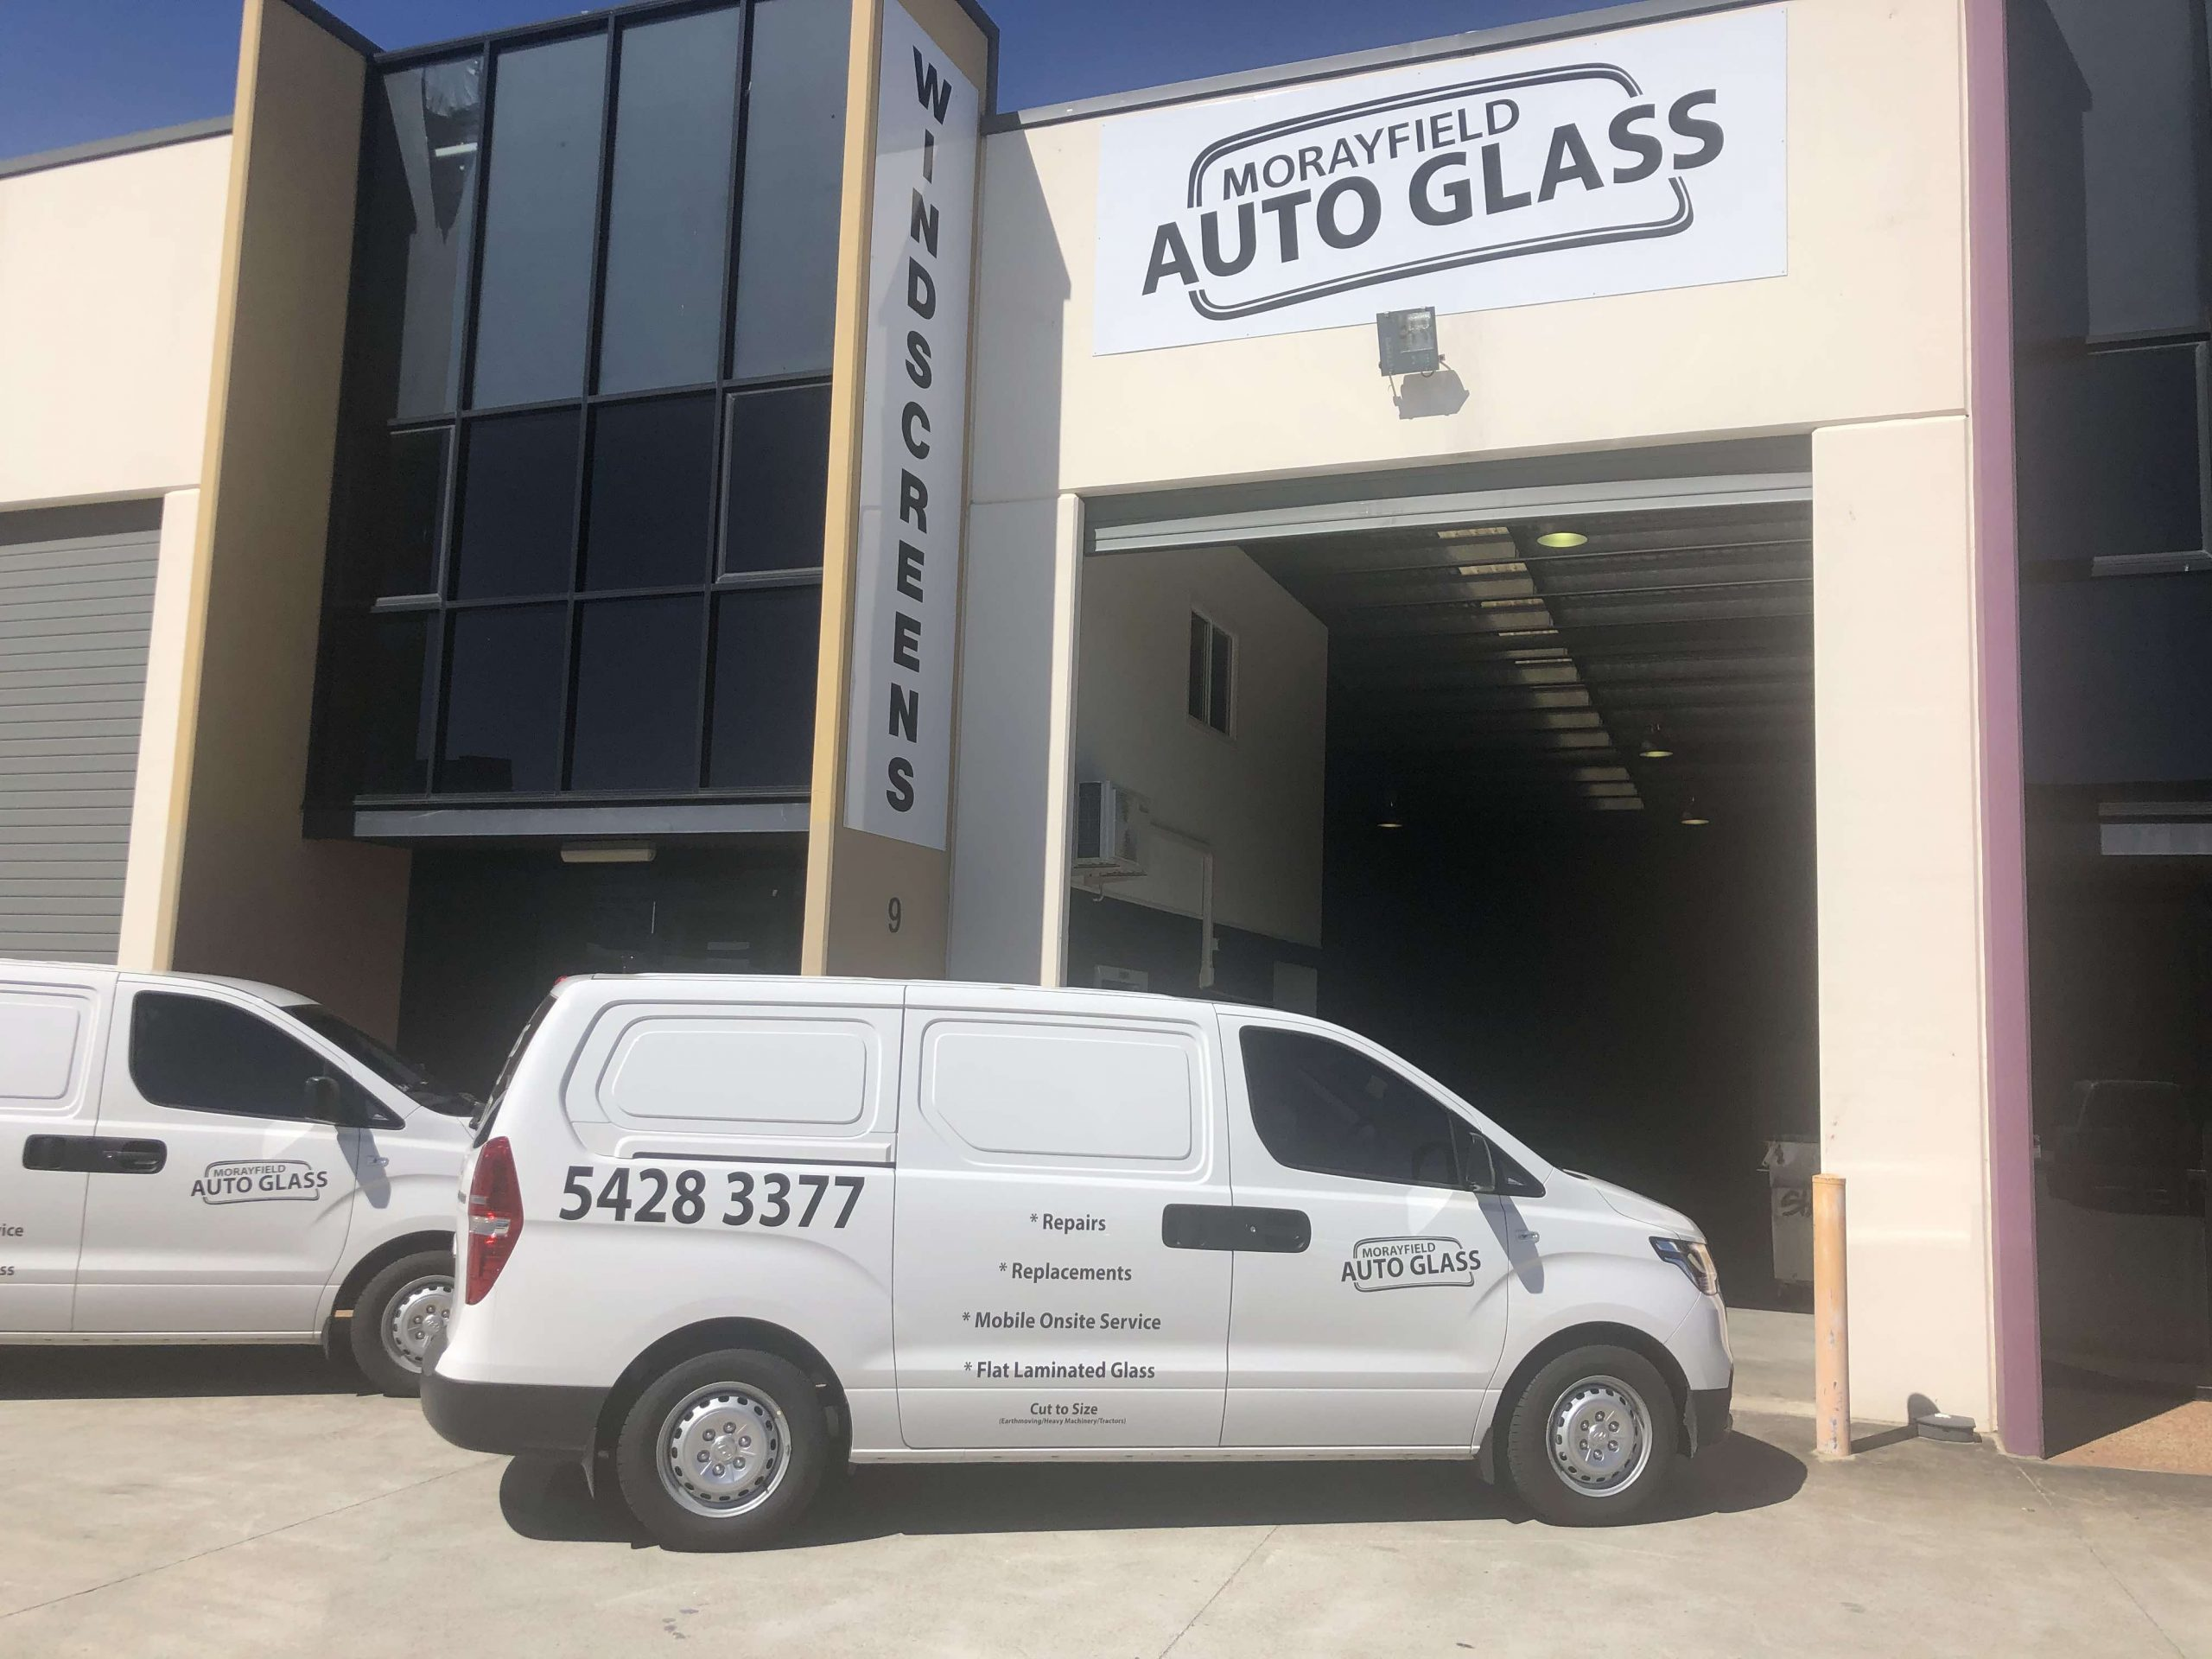 Image of the front of Morayfield Autoglass workshop